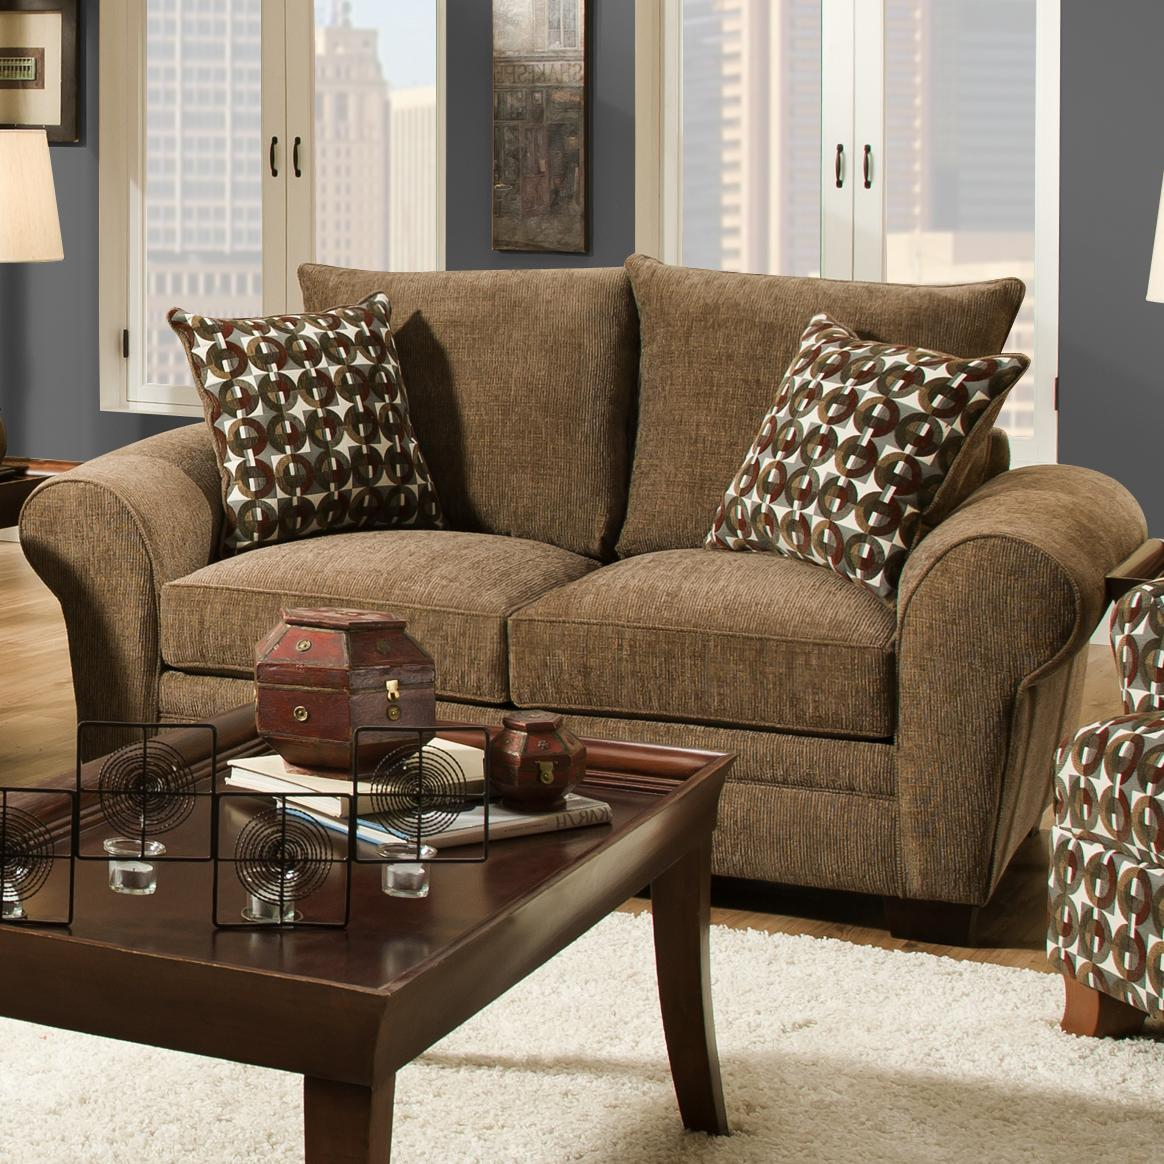 Corinthian 5460 traditional styled loveseat with comfortable look for casual family living for Comfortable living room chairs on clearance